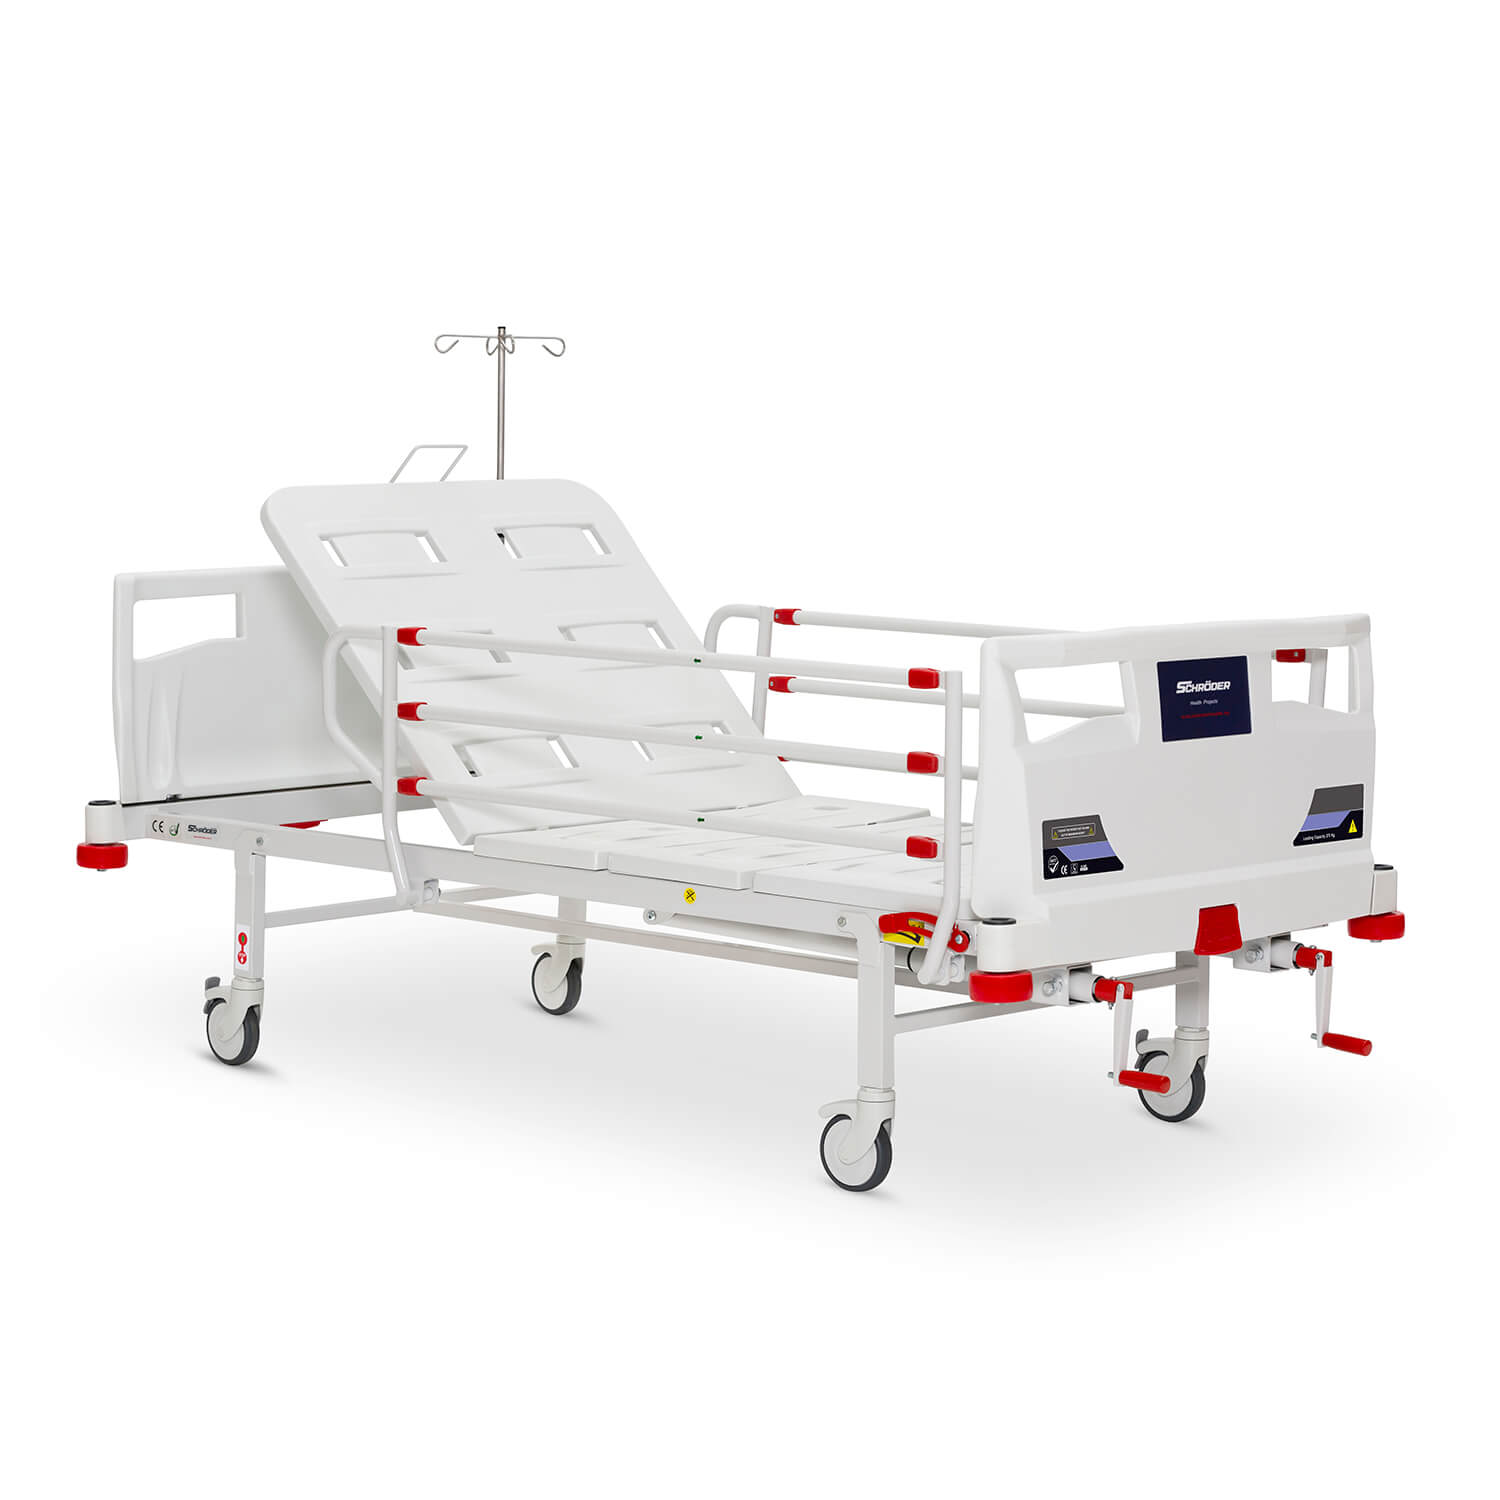 Parallel Mechanical Operated Hospital Bed, 2 Cranks